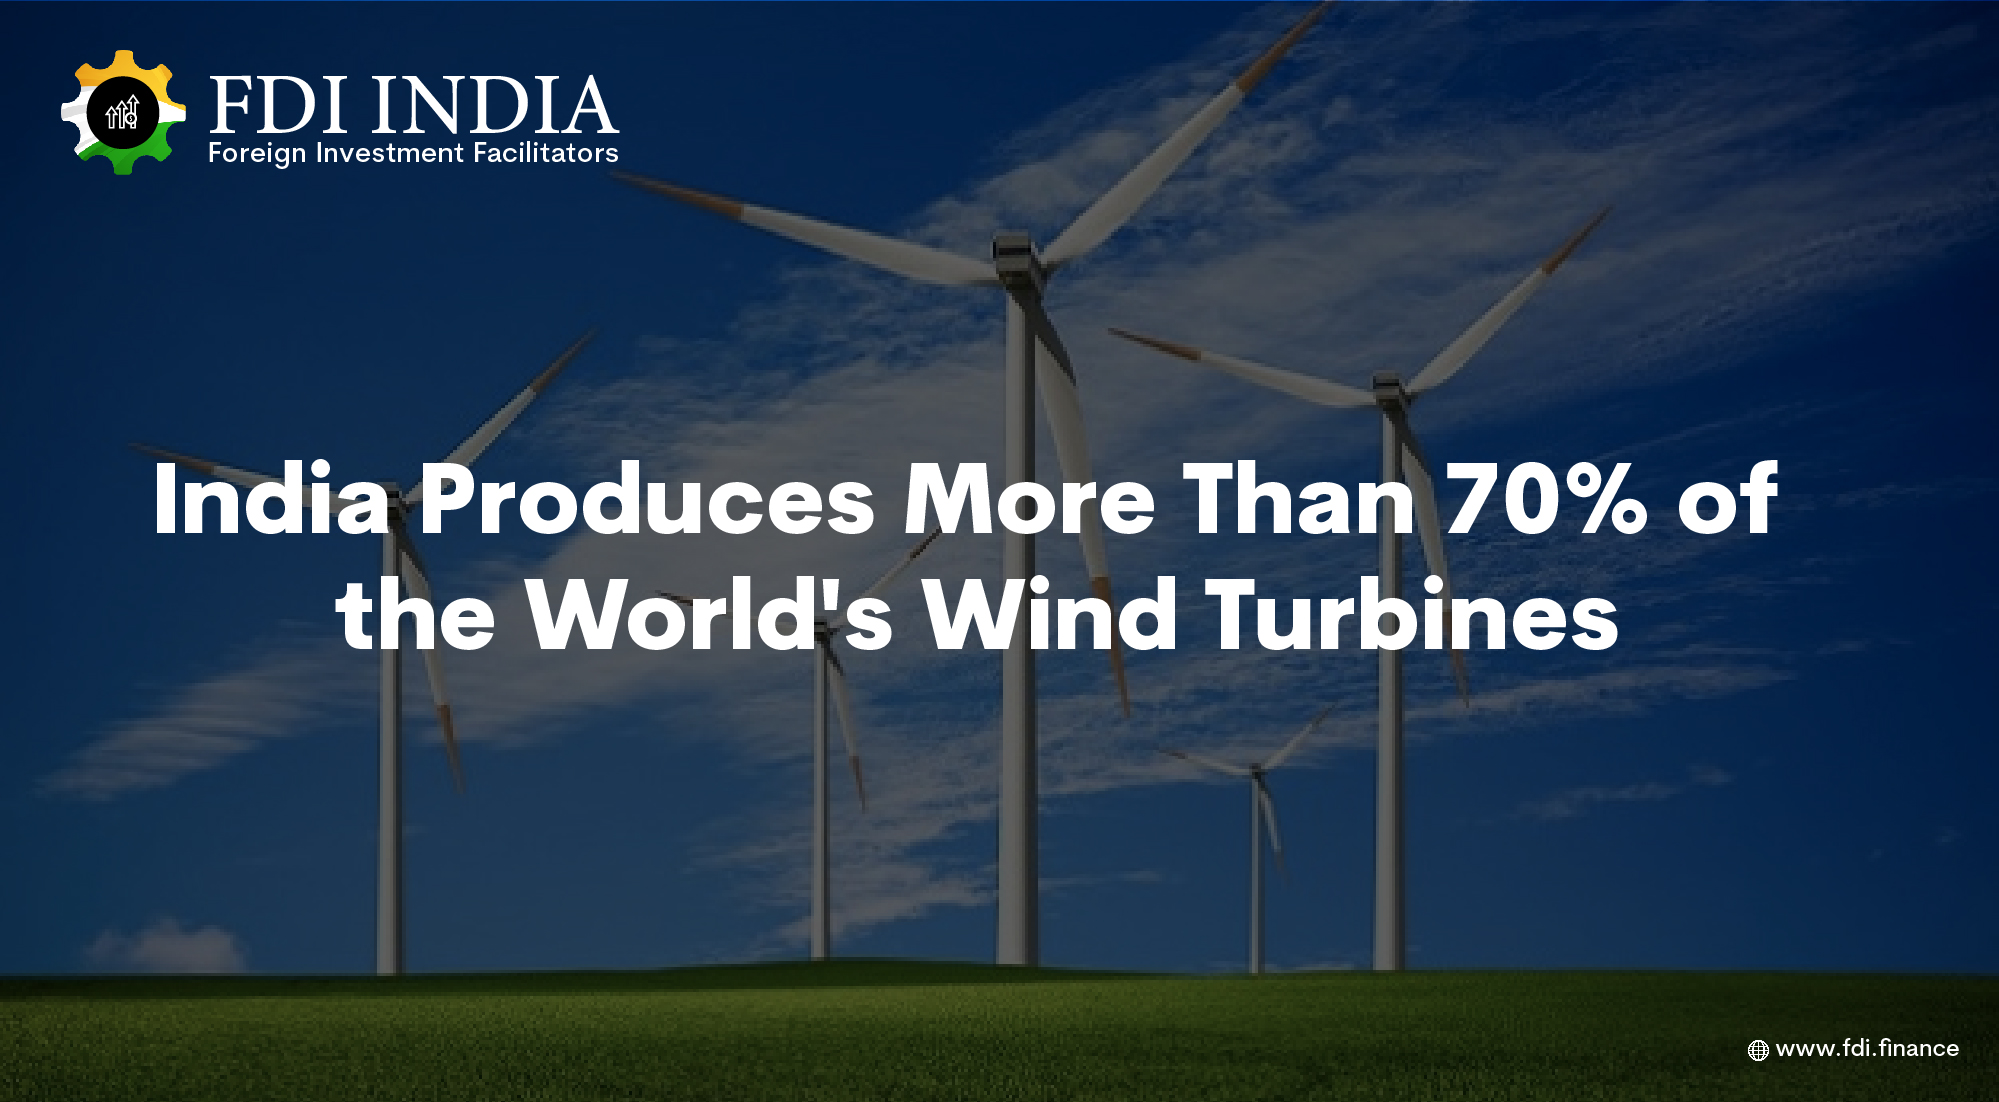 India Produces More Than 70% of the World's Wind Turbines